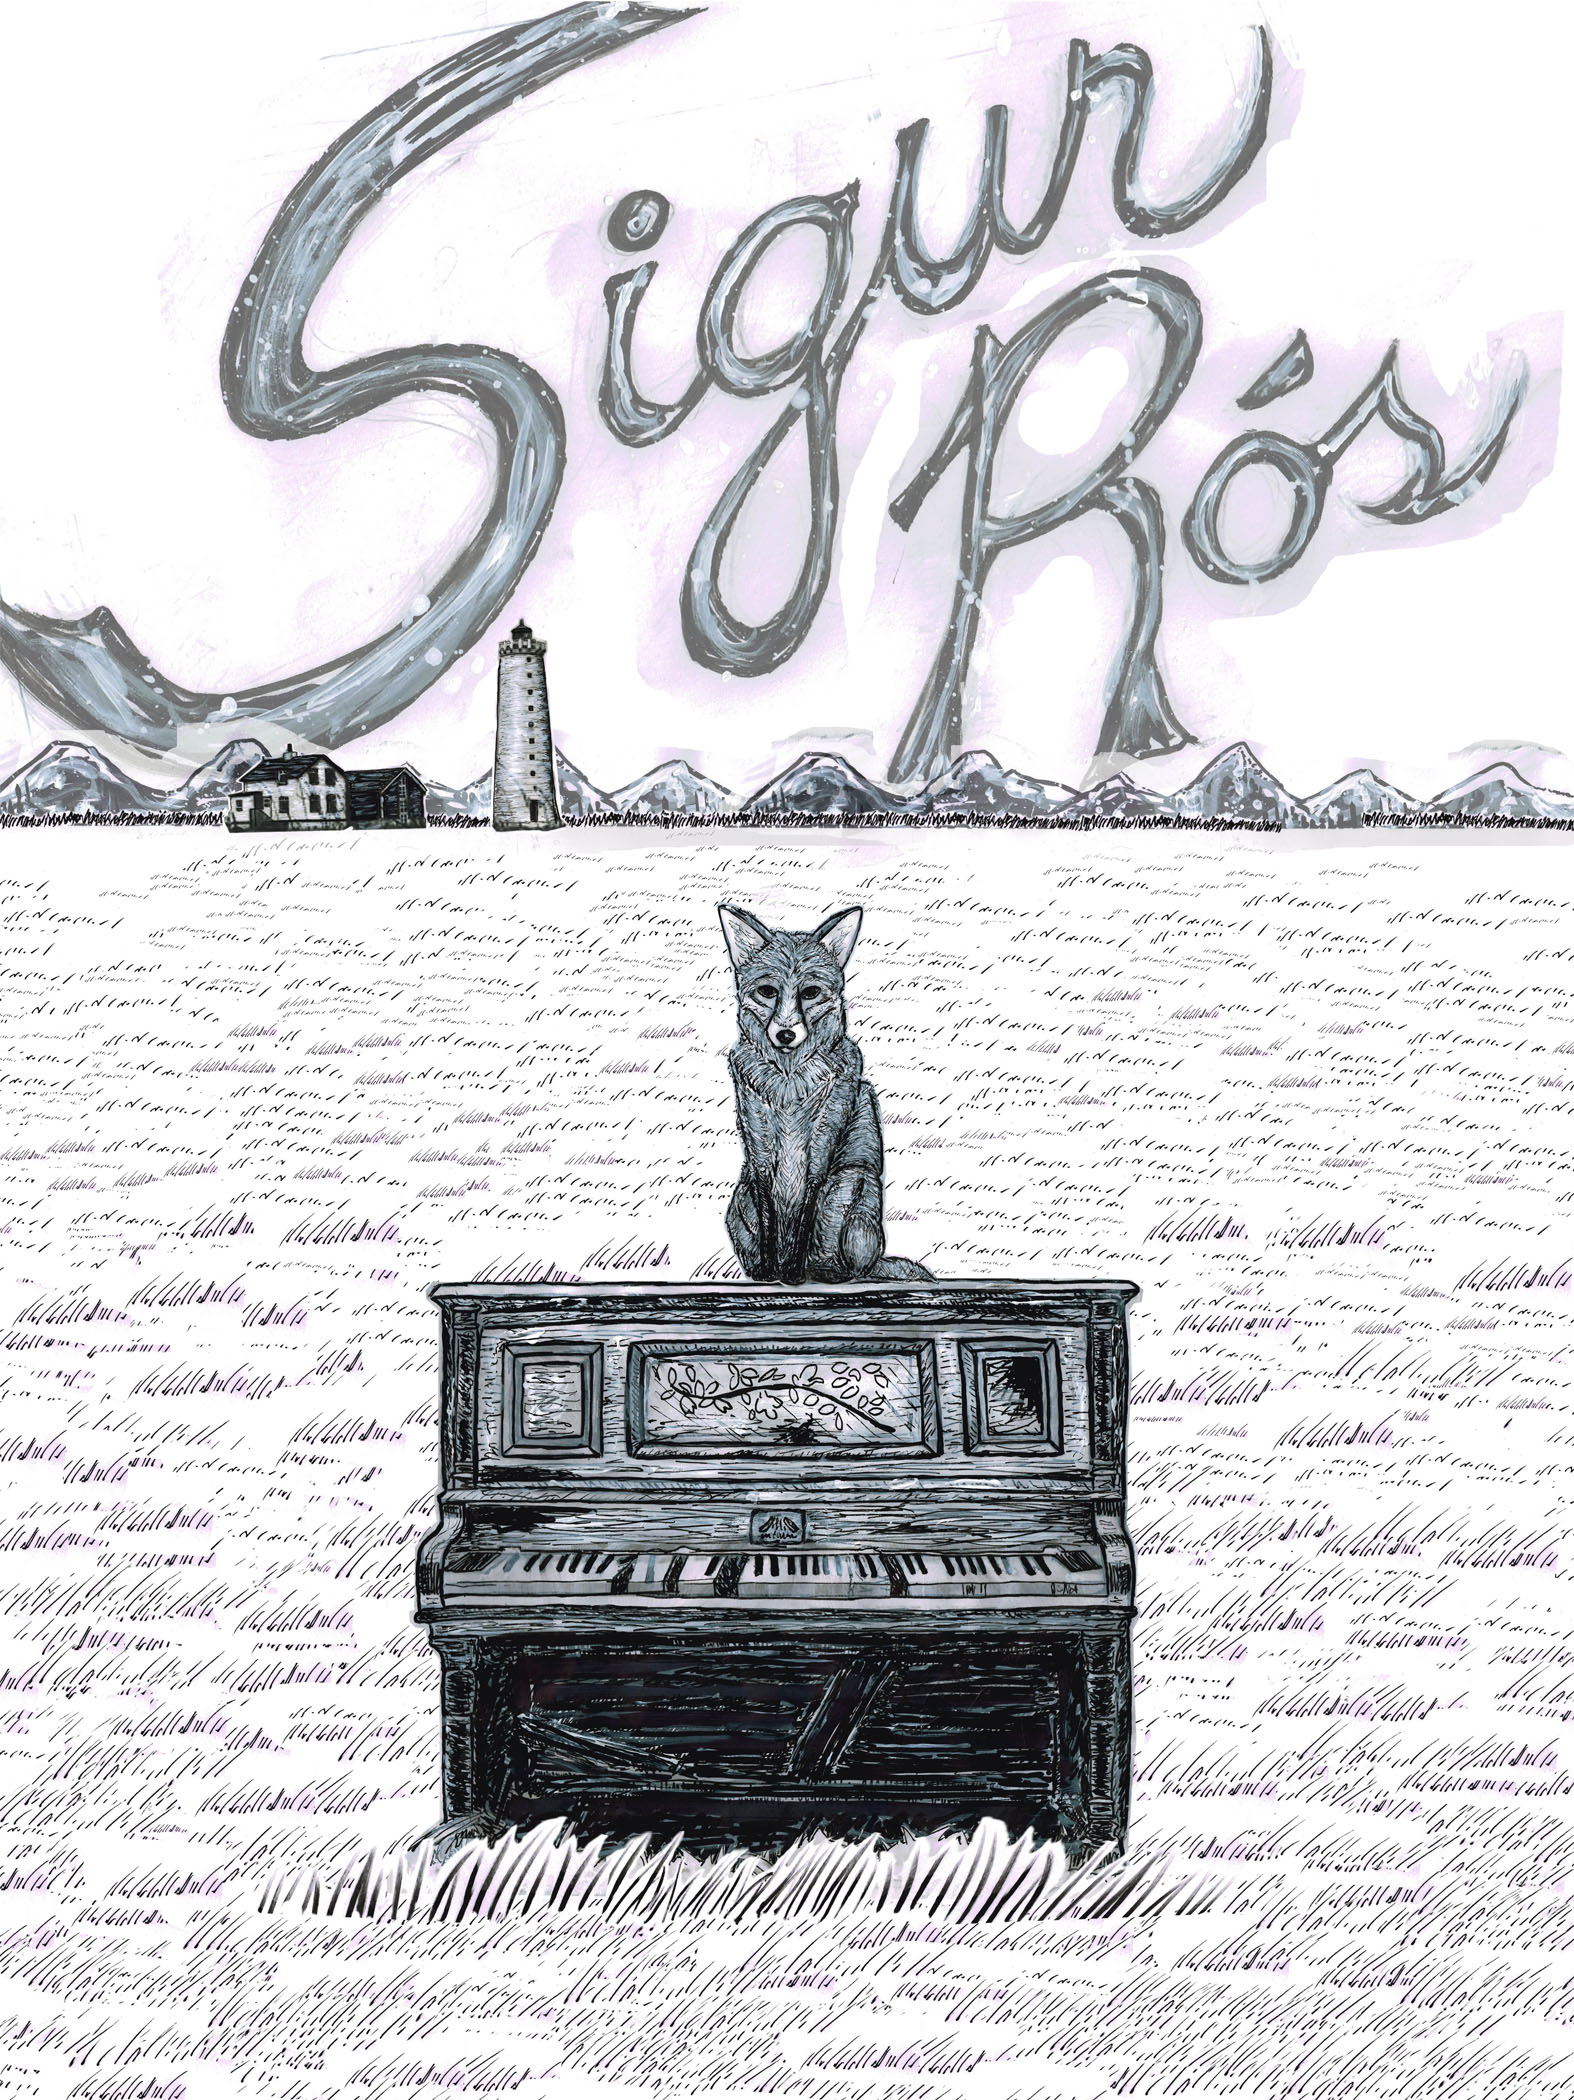 Sigur Ros Gig Poster  - image 10 - student project